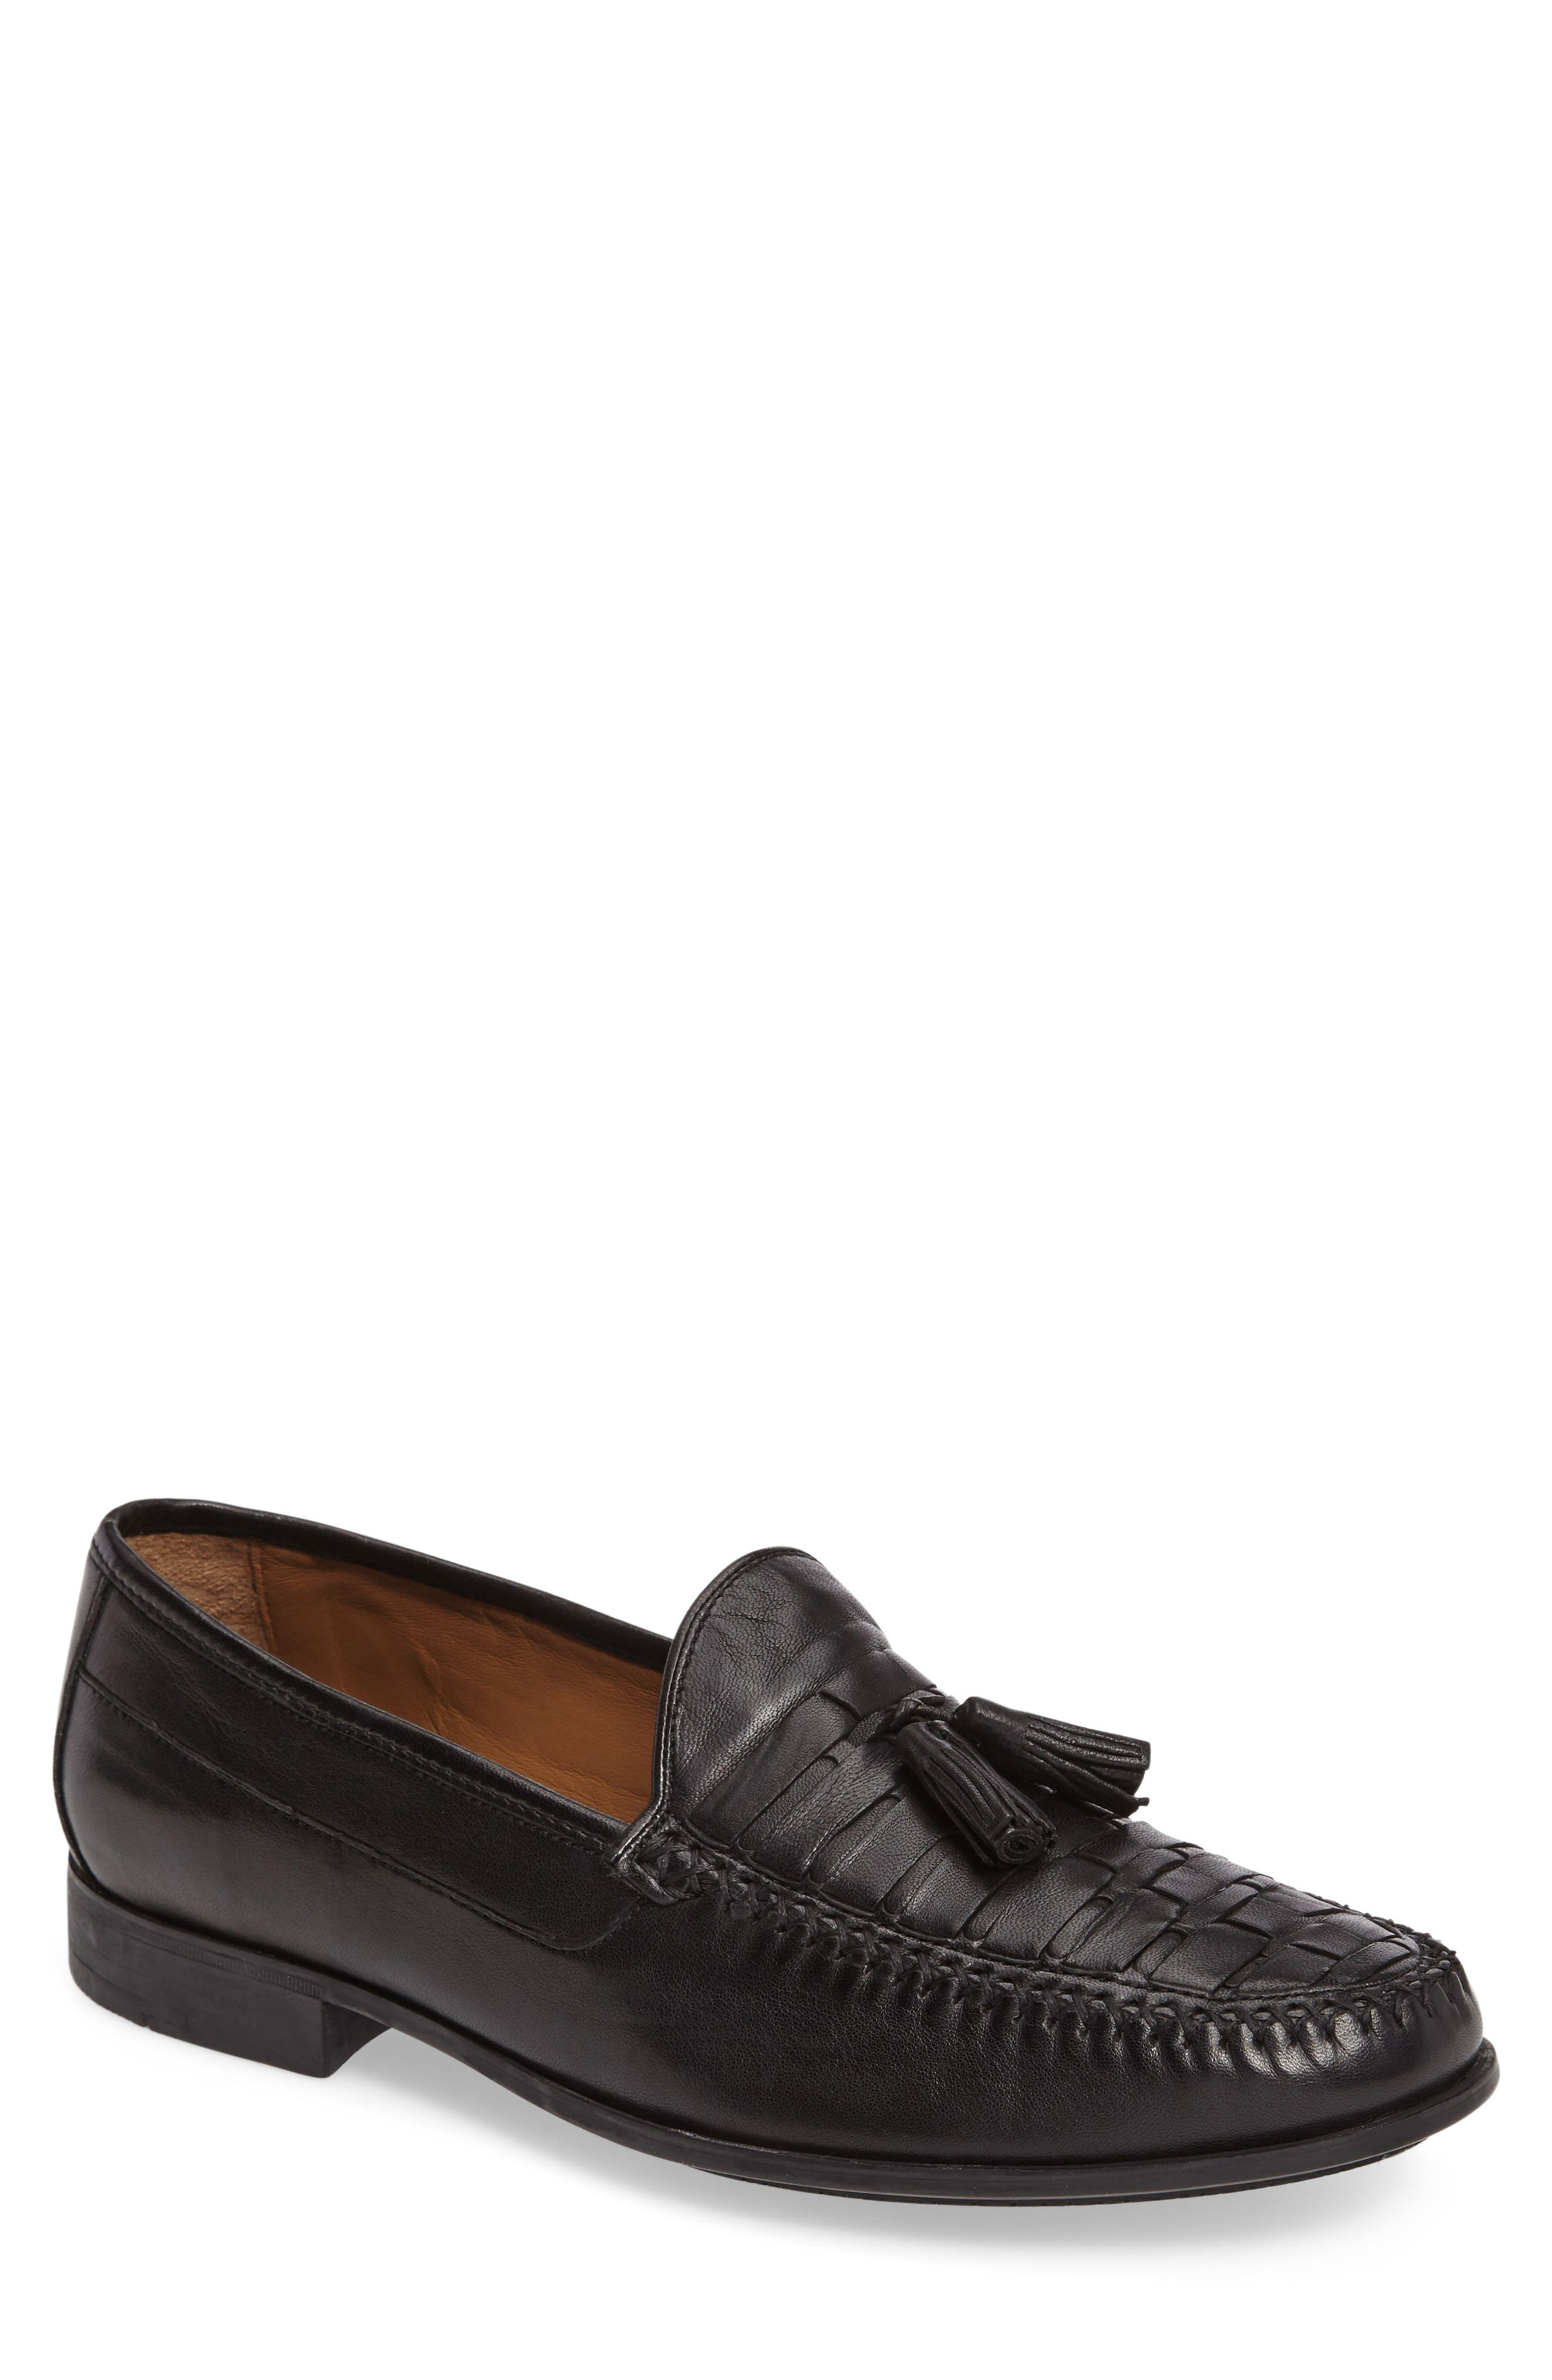 Cresswell Woven Tassel Loafer,                             Main thumbnail 1, color,                             001